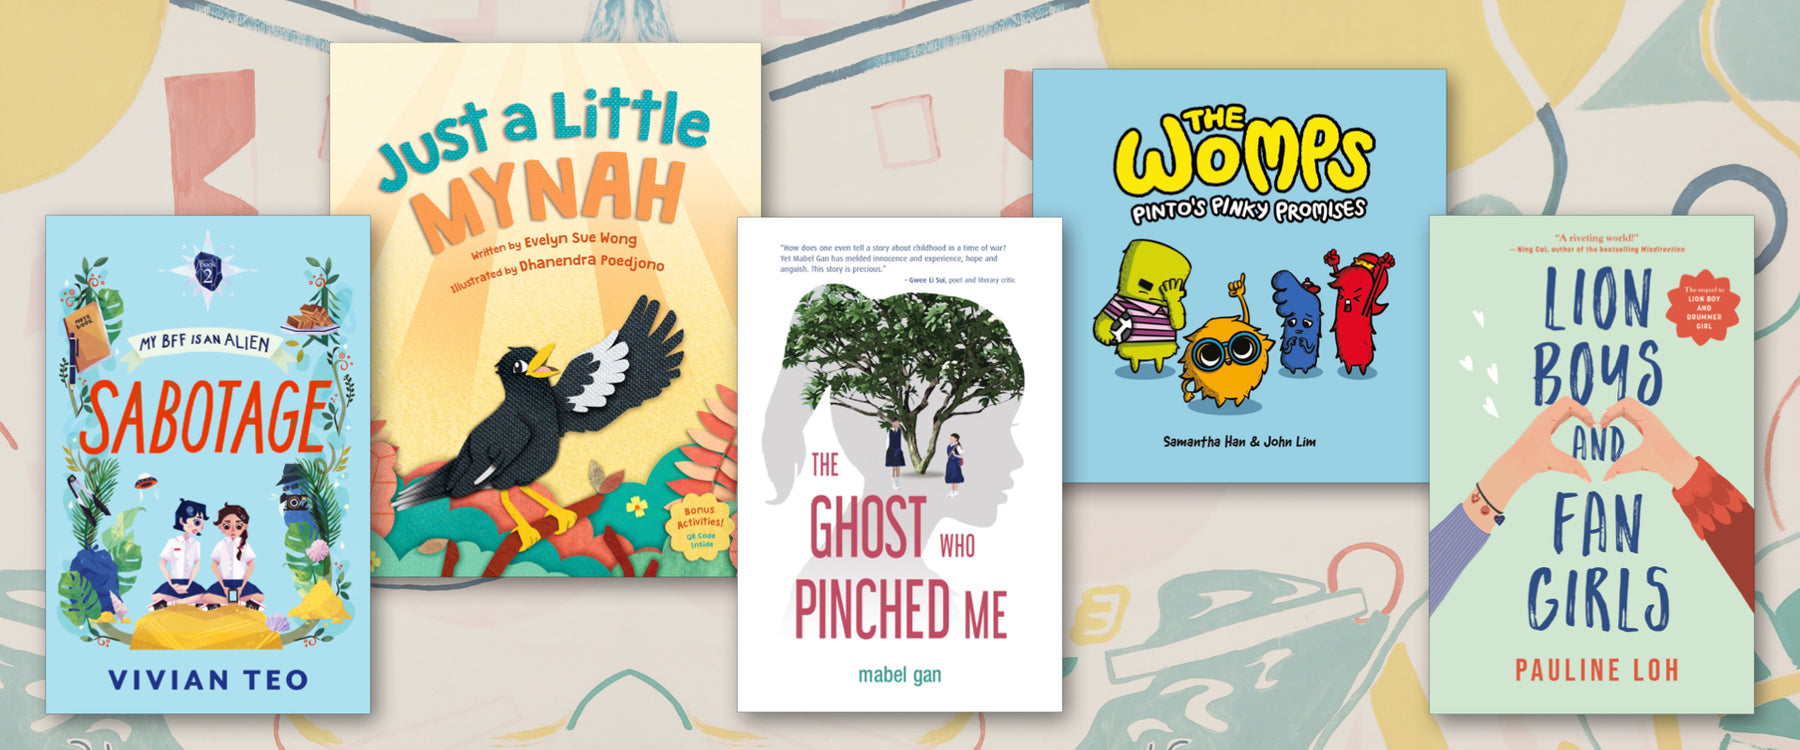 Children's Day Reads: Top 10 books for kids of all ages